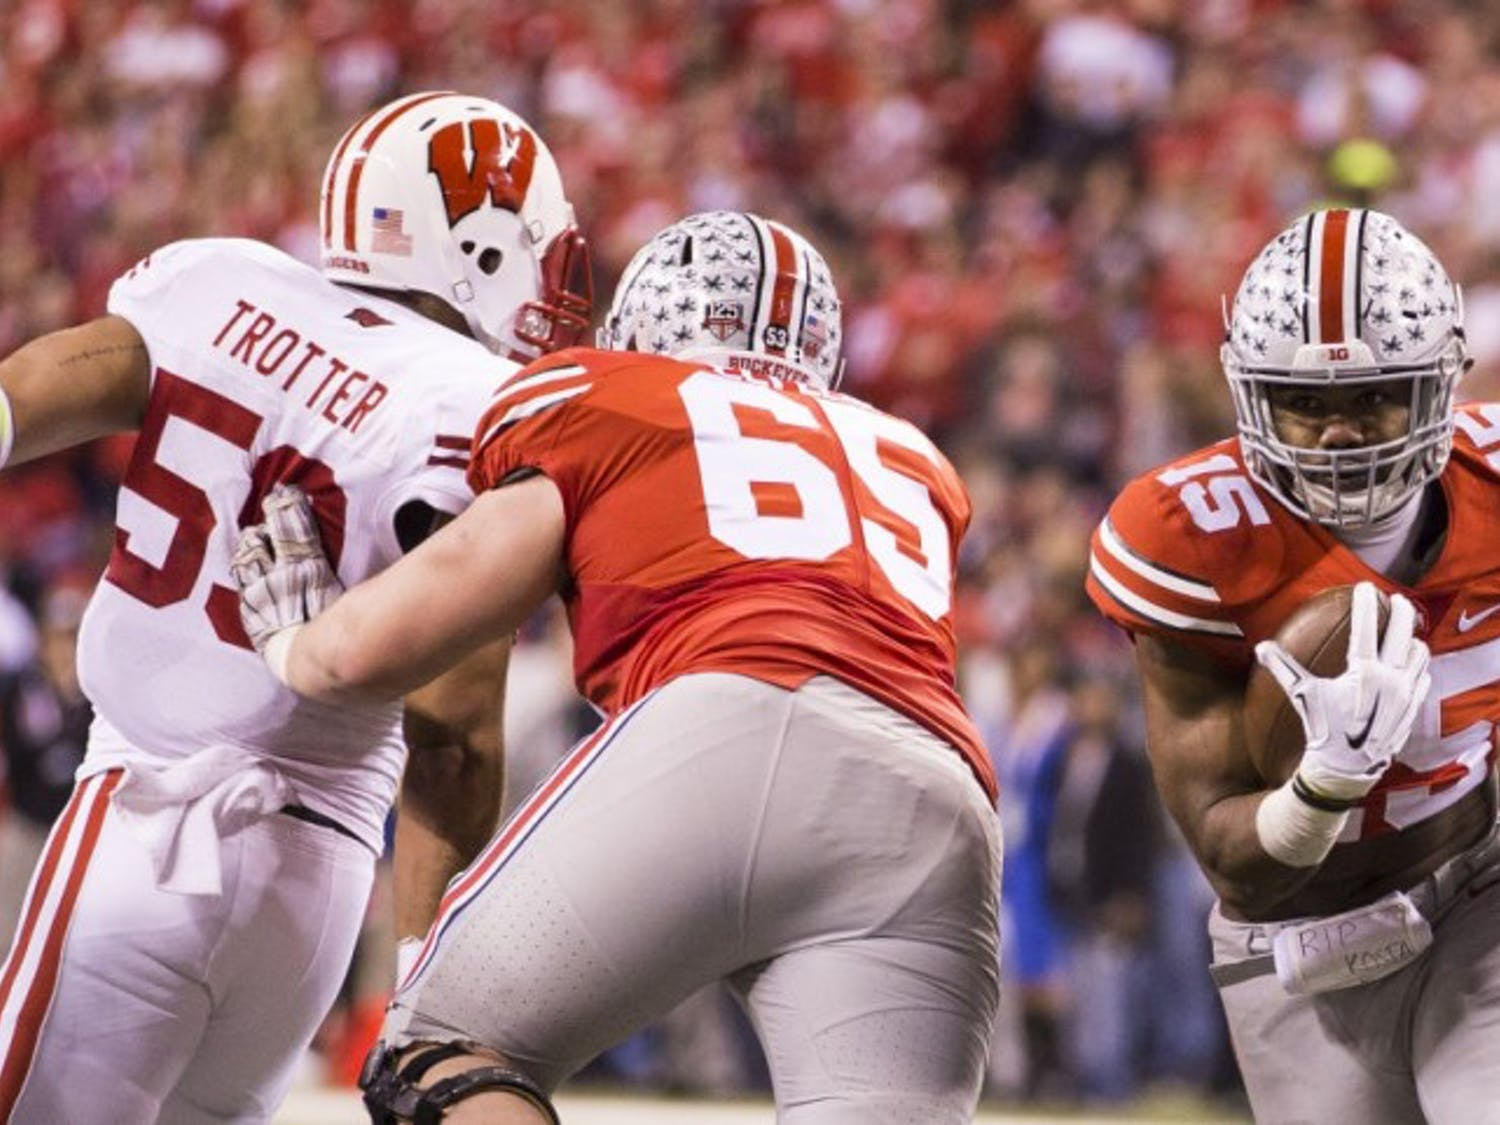 The last time UW and OSU met in the Big Ten Championship was in 2014 when Ohio State rocked the Badgers 59-0.